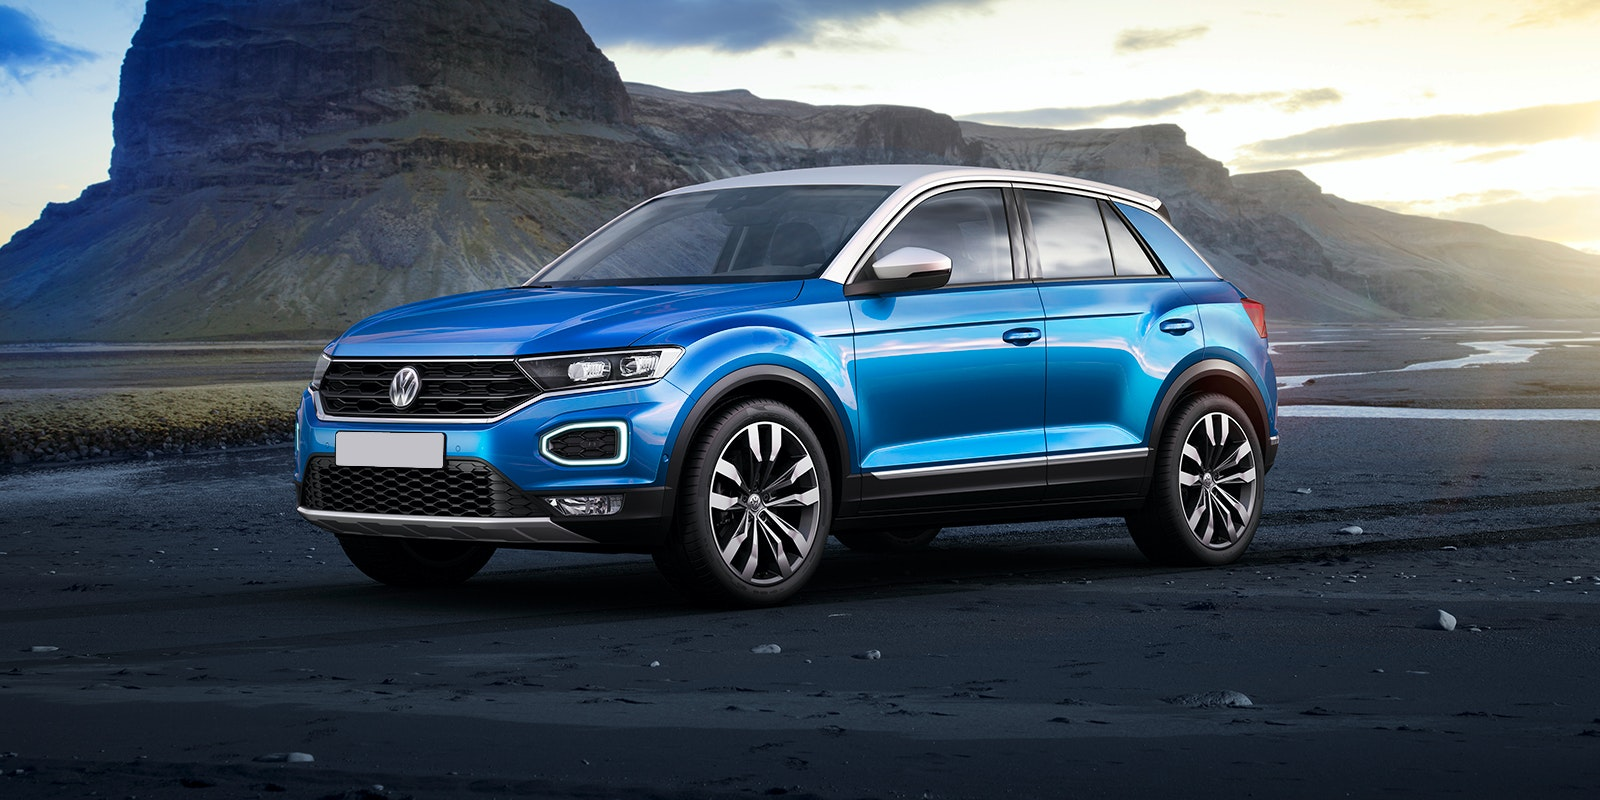 2018 Audi Q2 Release Date And Specs >> 2018 VW T-Roc price, specs and release date | carwow